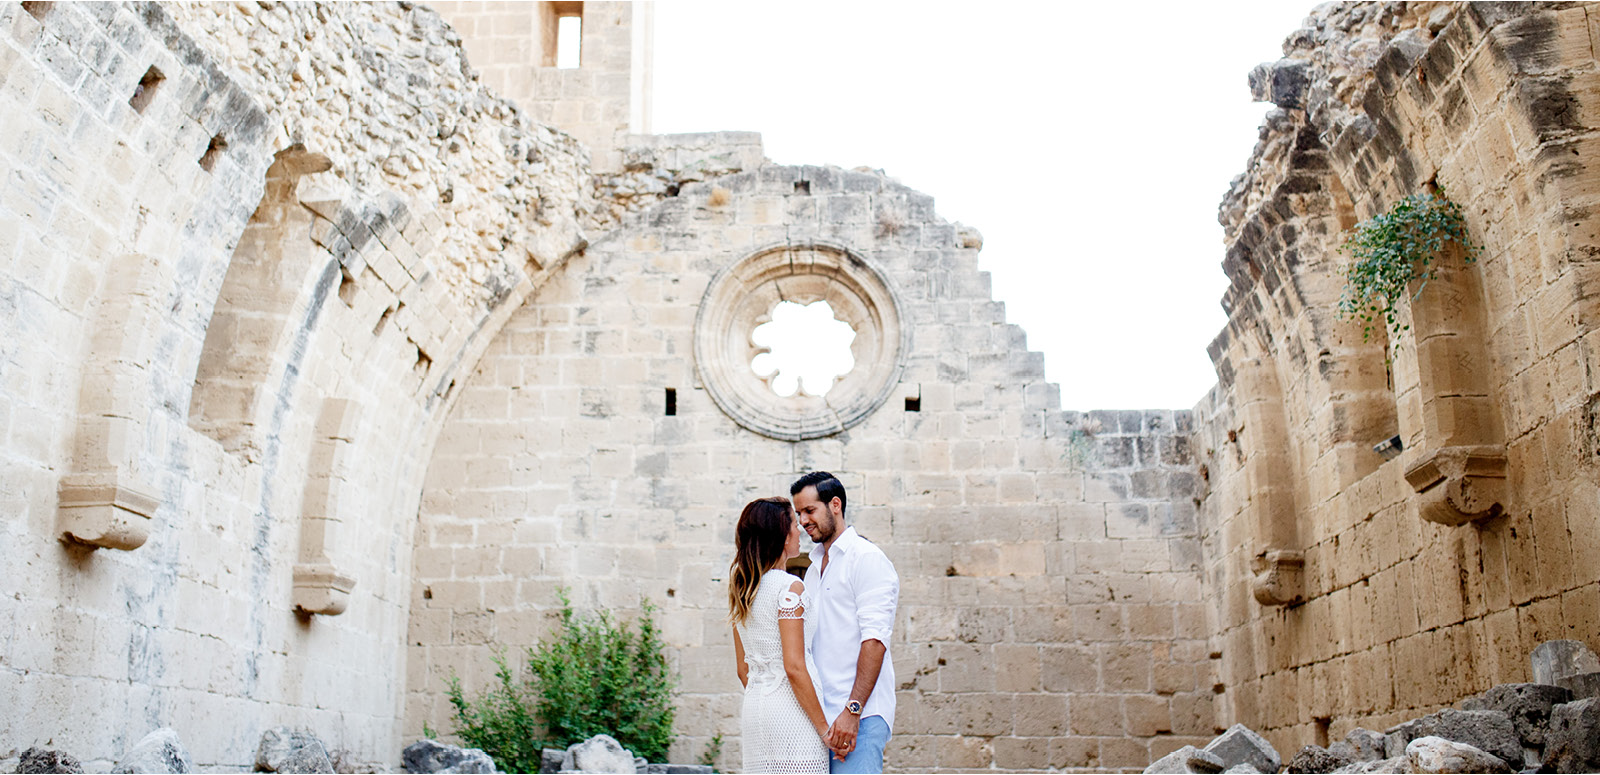 Bride and Groom looking at each other during wedding portraits in Bellapais Abbey in North Cyprus